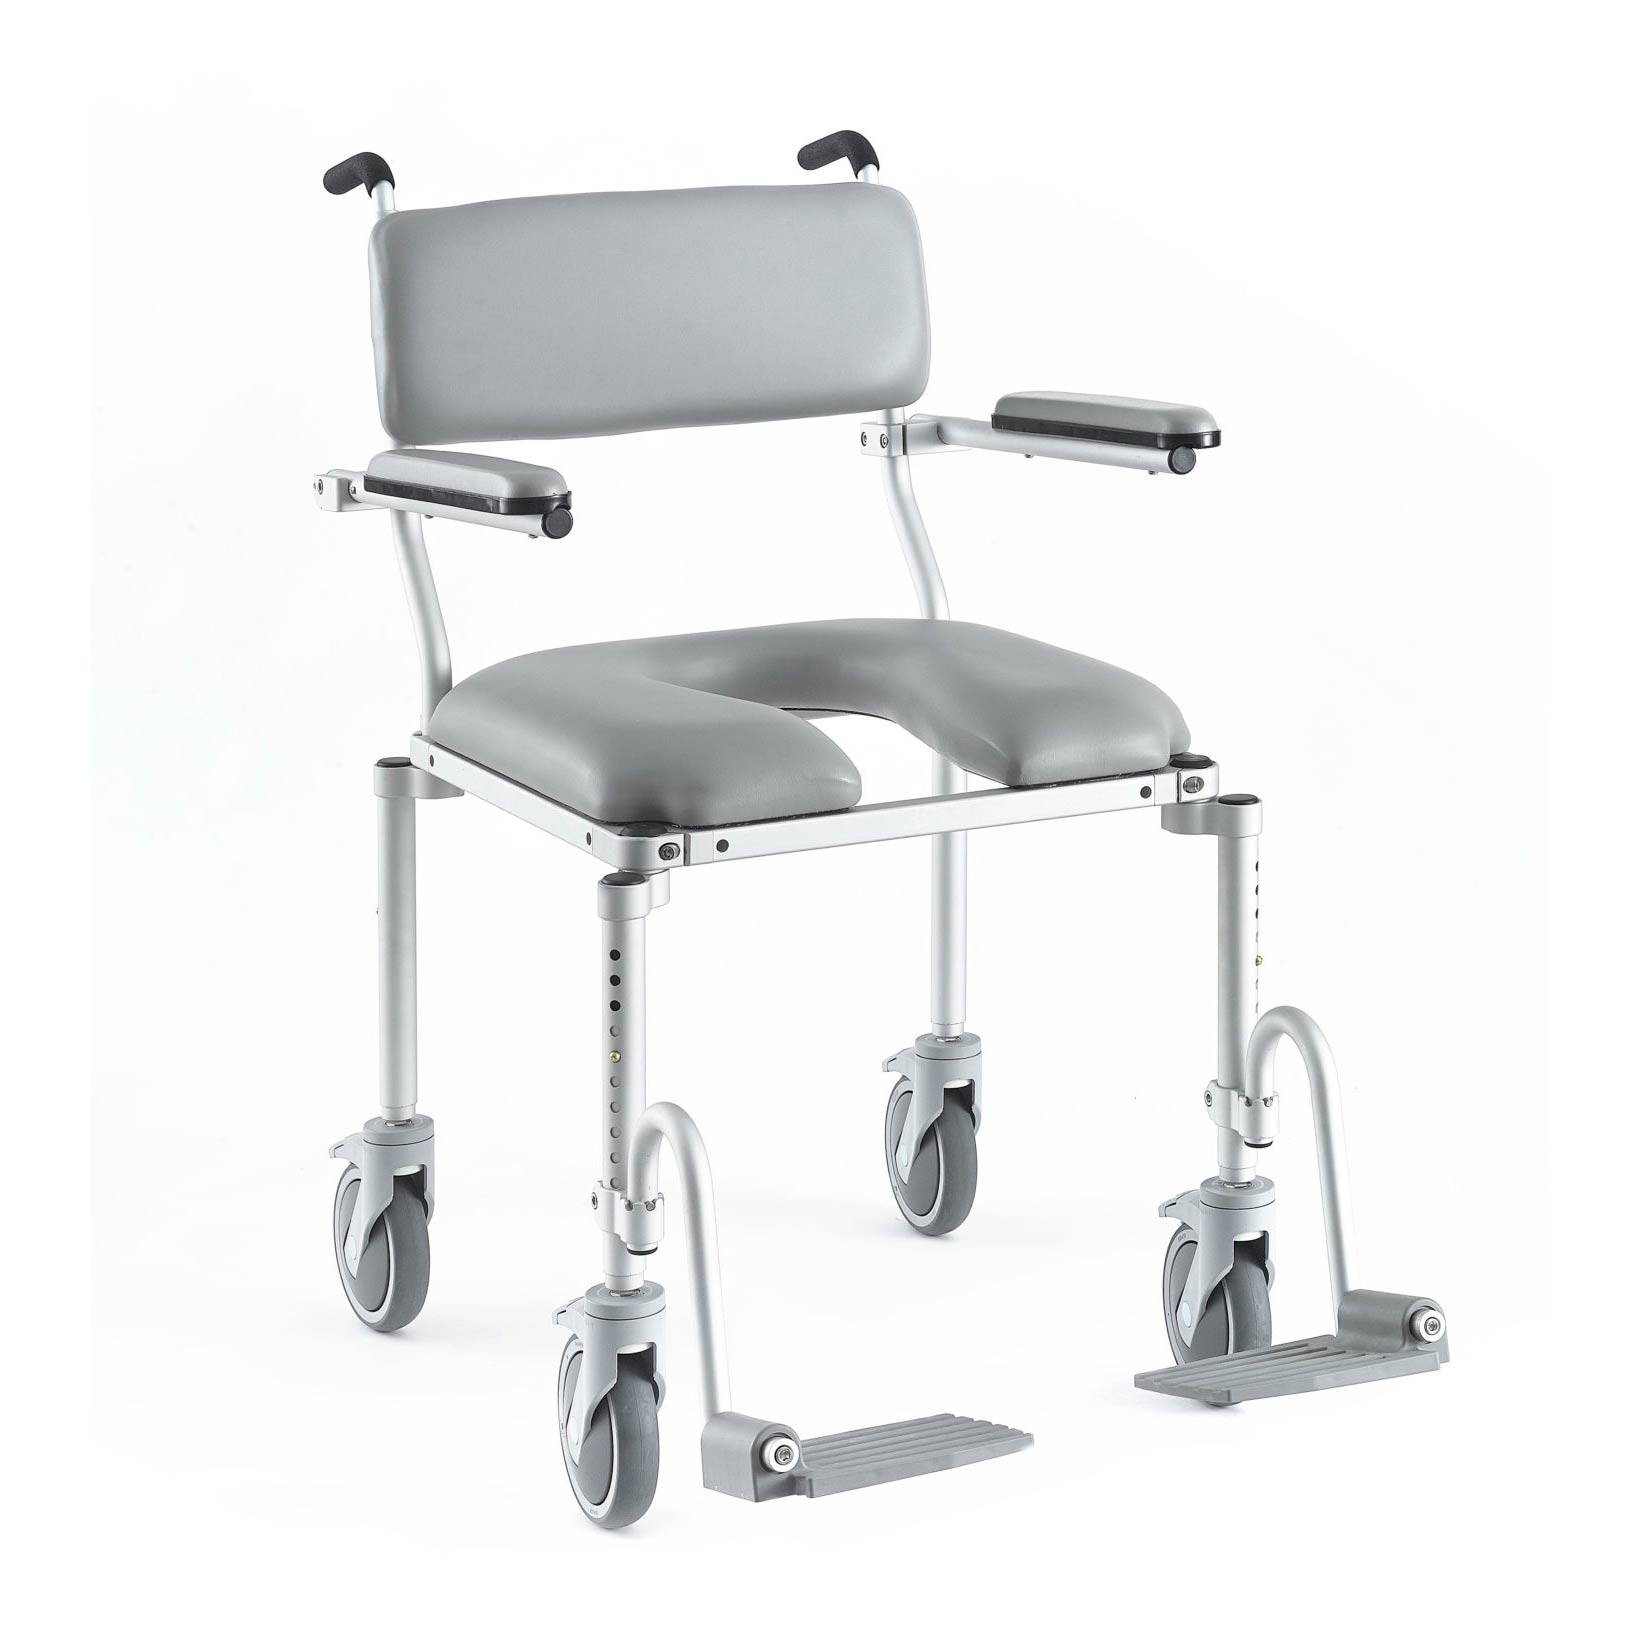 Nuprodx Multichair 4200 Roll-In-Shower Commode Chair | Medicaleshop